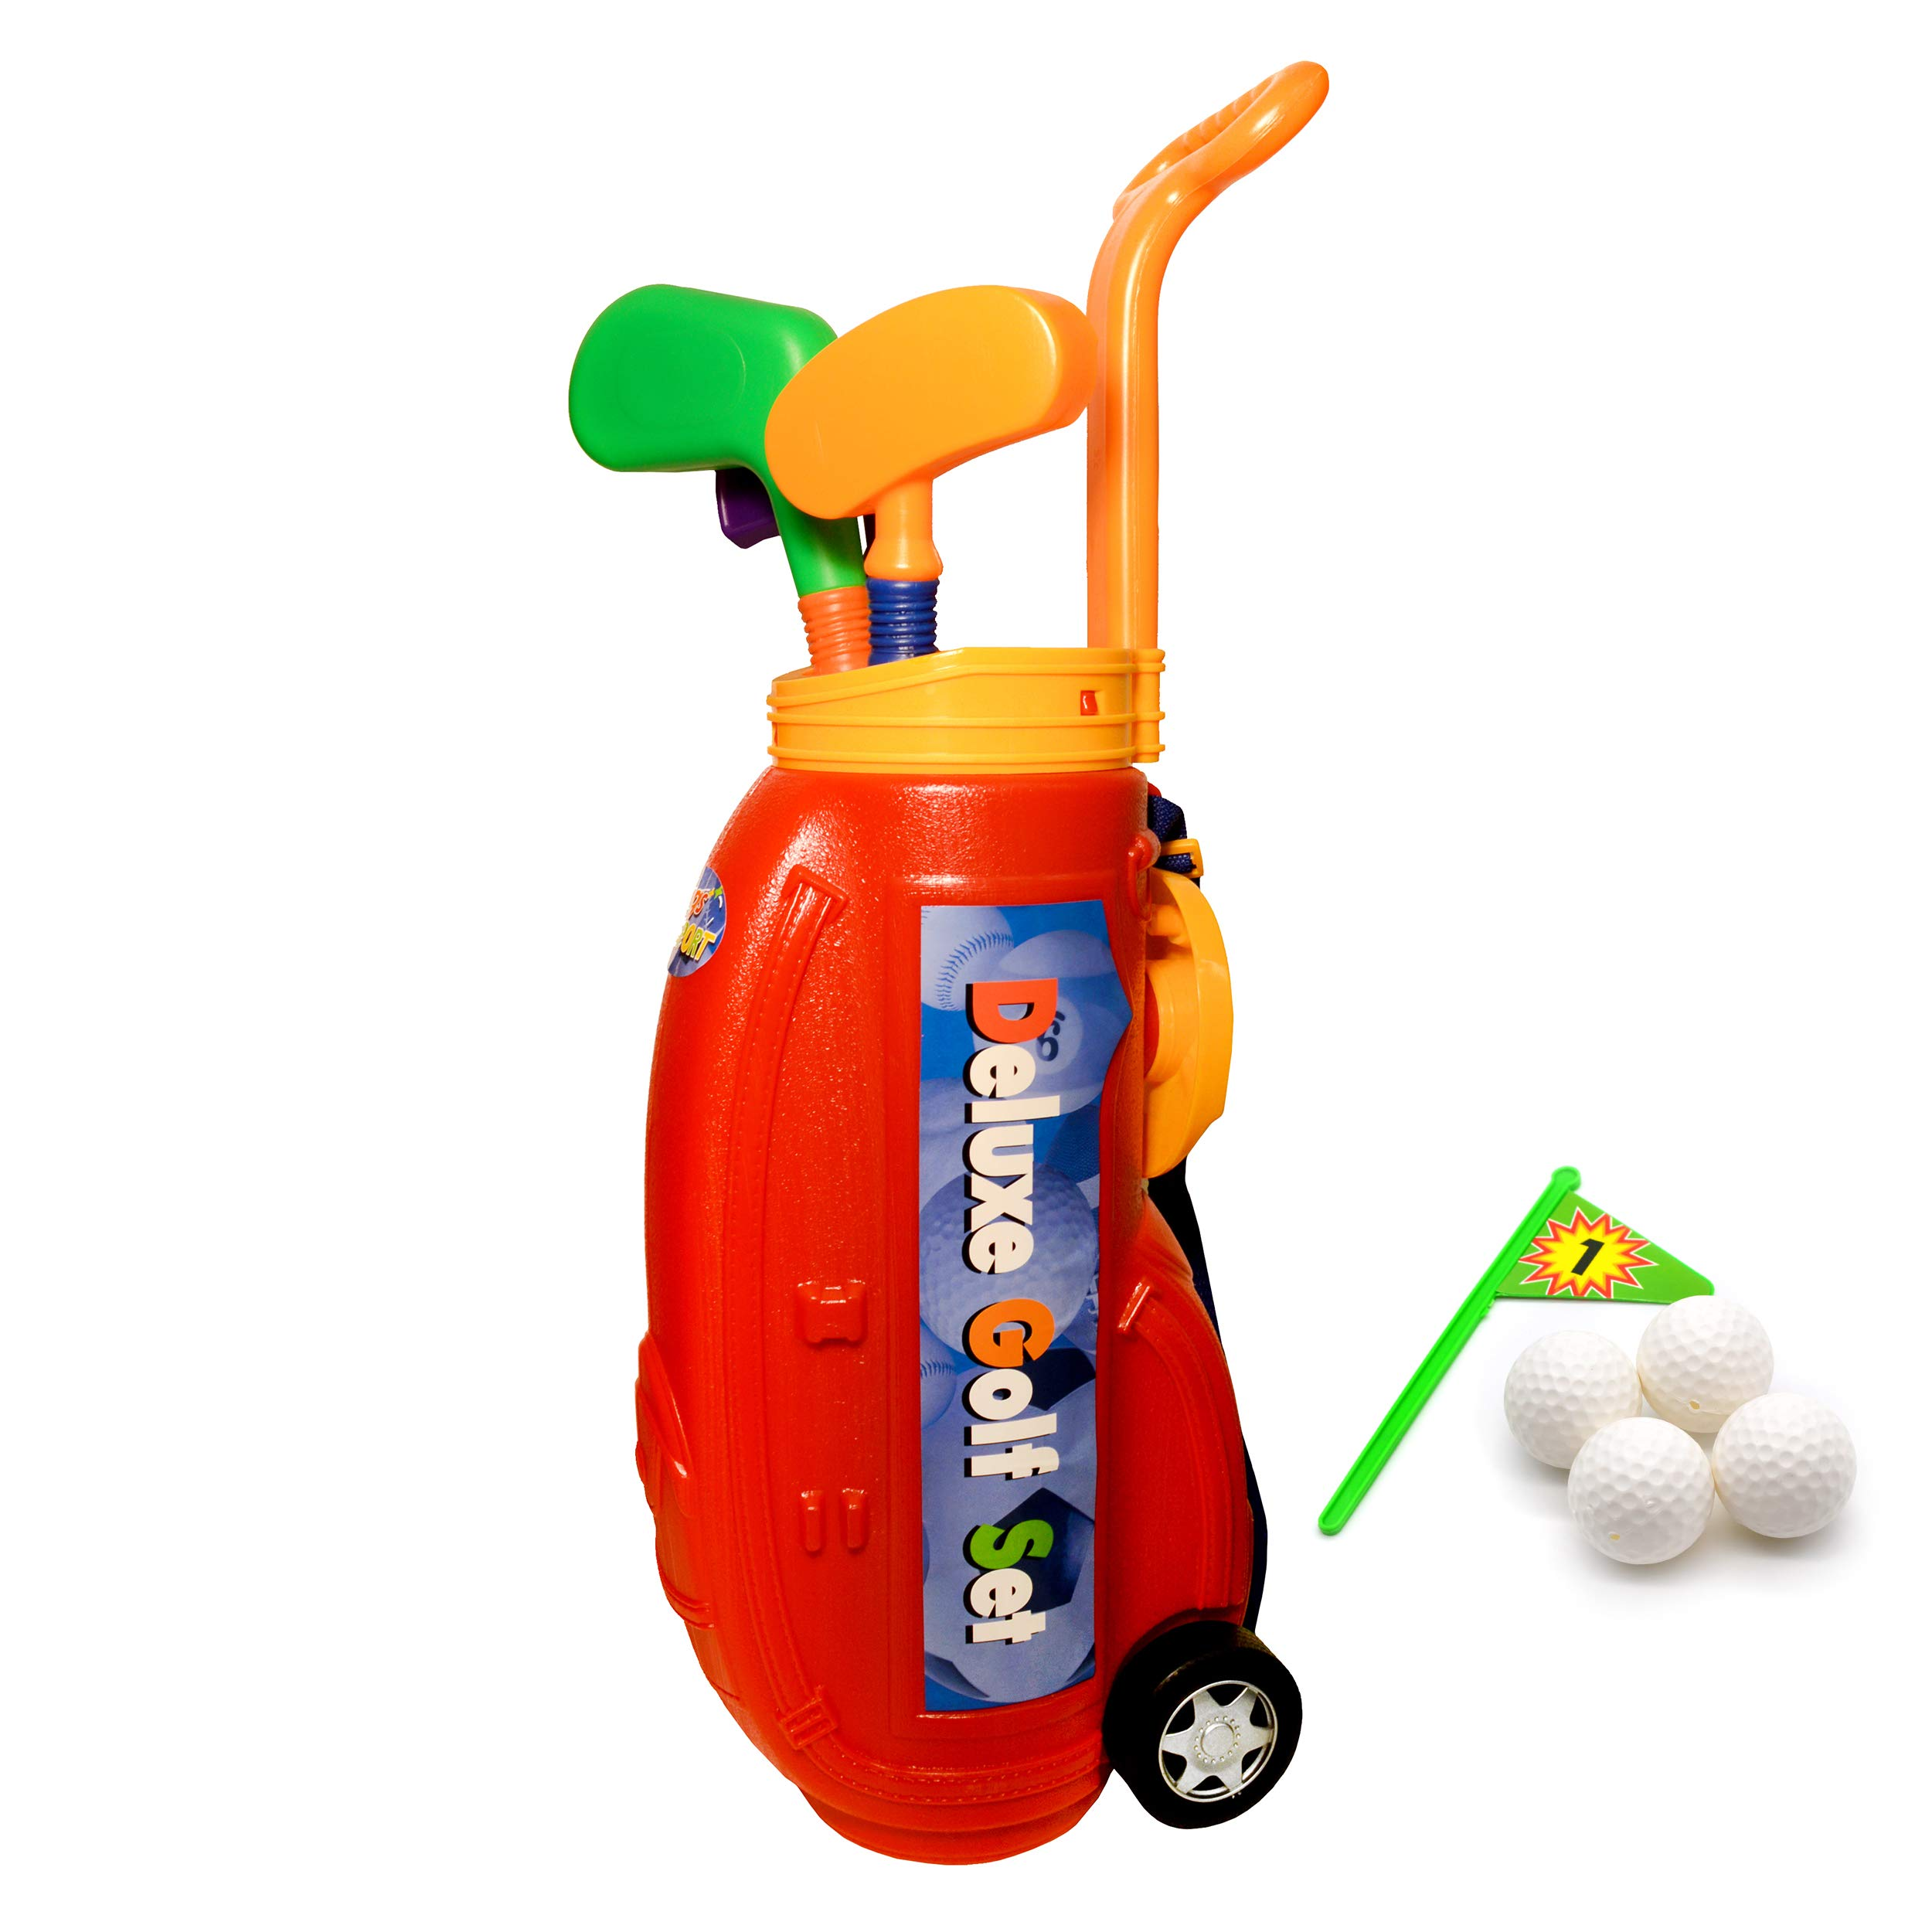 Kid's Toy Golf Clubs Deluxe Set - Includes 4 Balls and Accessories - Outdoors Children's Sports Toys, Mini Golf by Jimmy's Toys